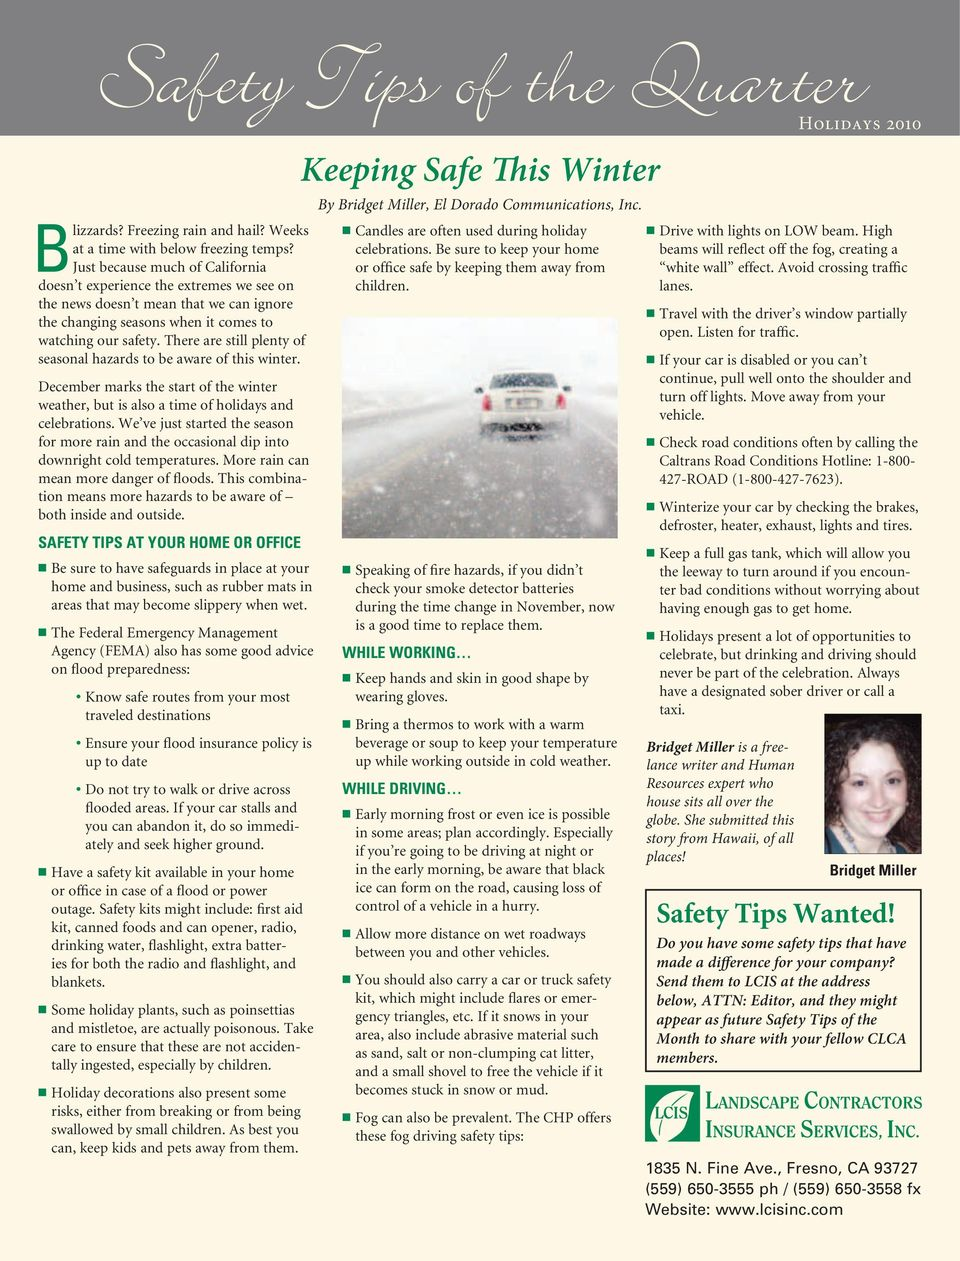 There are still plenty of seasonal hazards to be aware of this winter. December marks the start of the winter weather, but is also a time of holidays and celebrations.